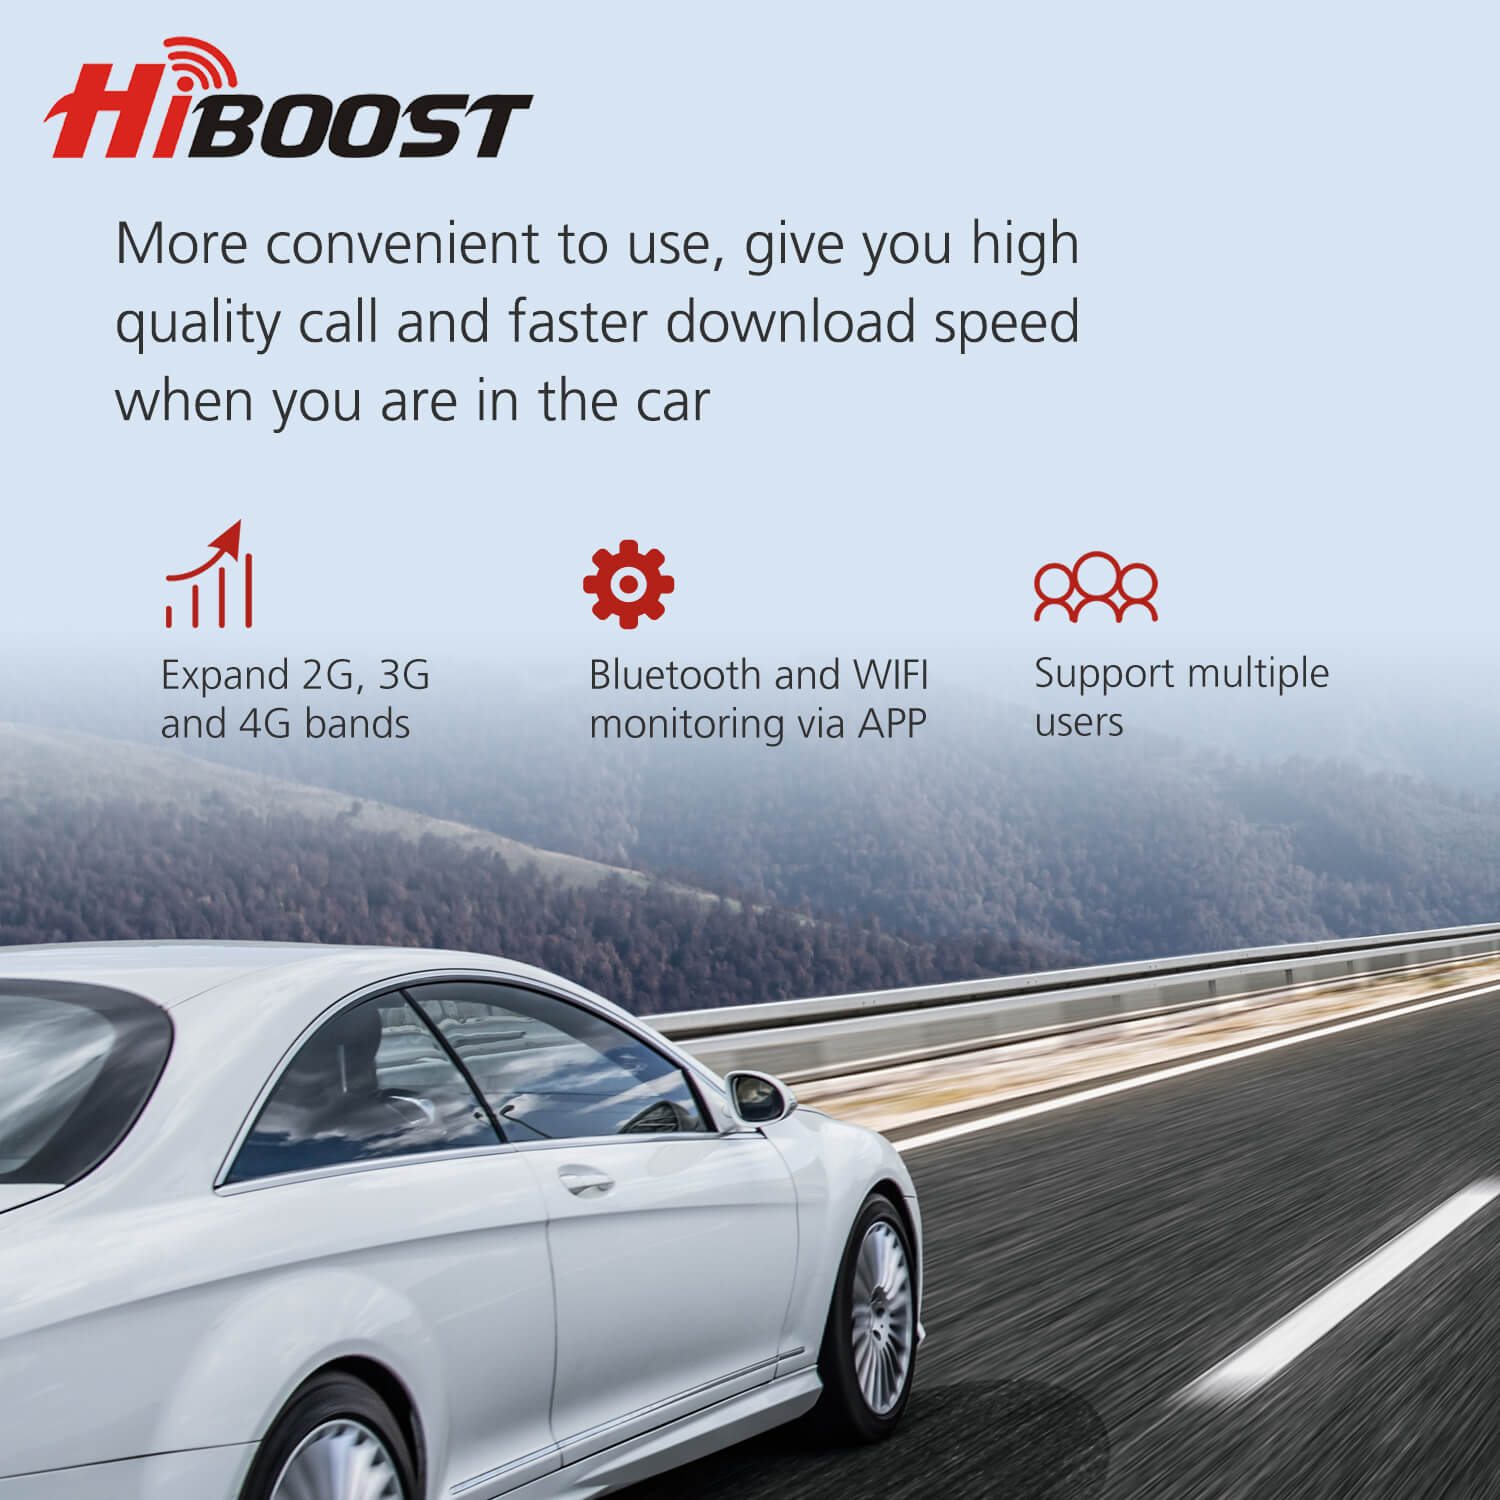 Hiboost-Travel-4G-2.0-CellularSignal-Booster-7